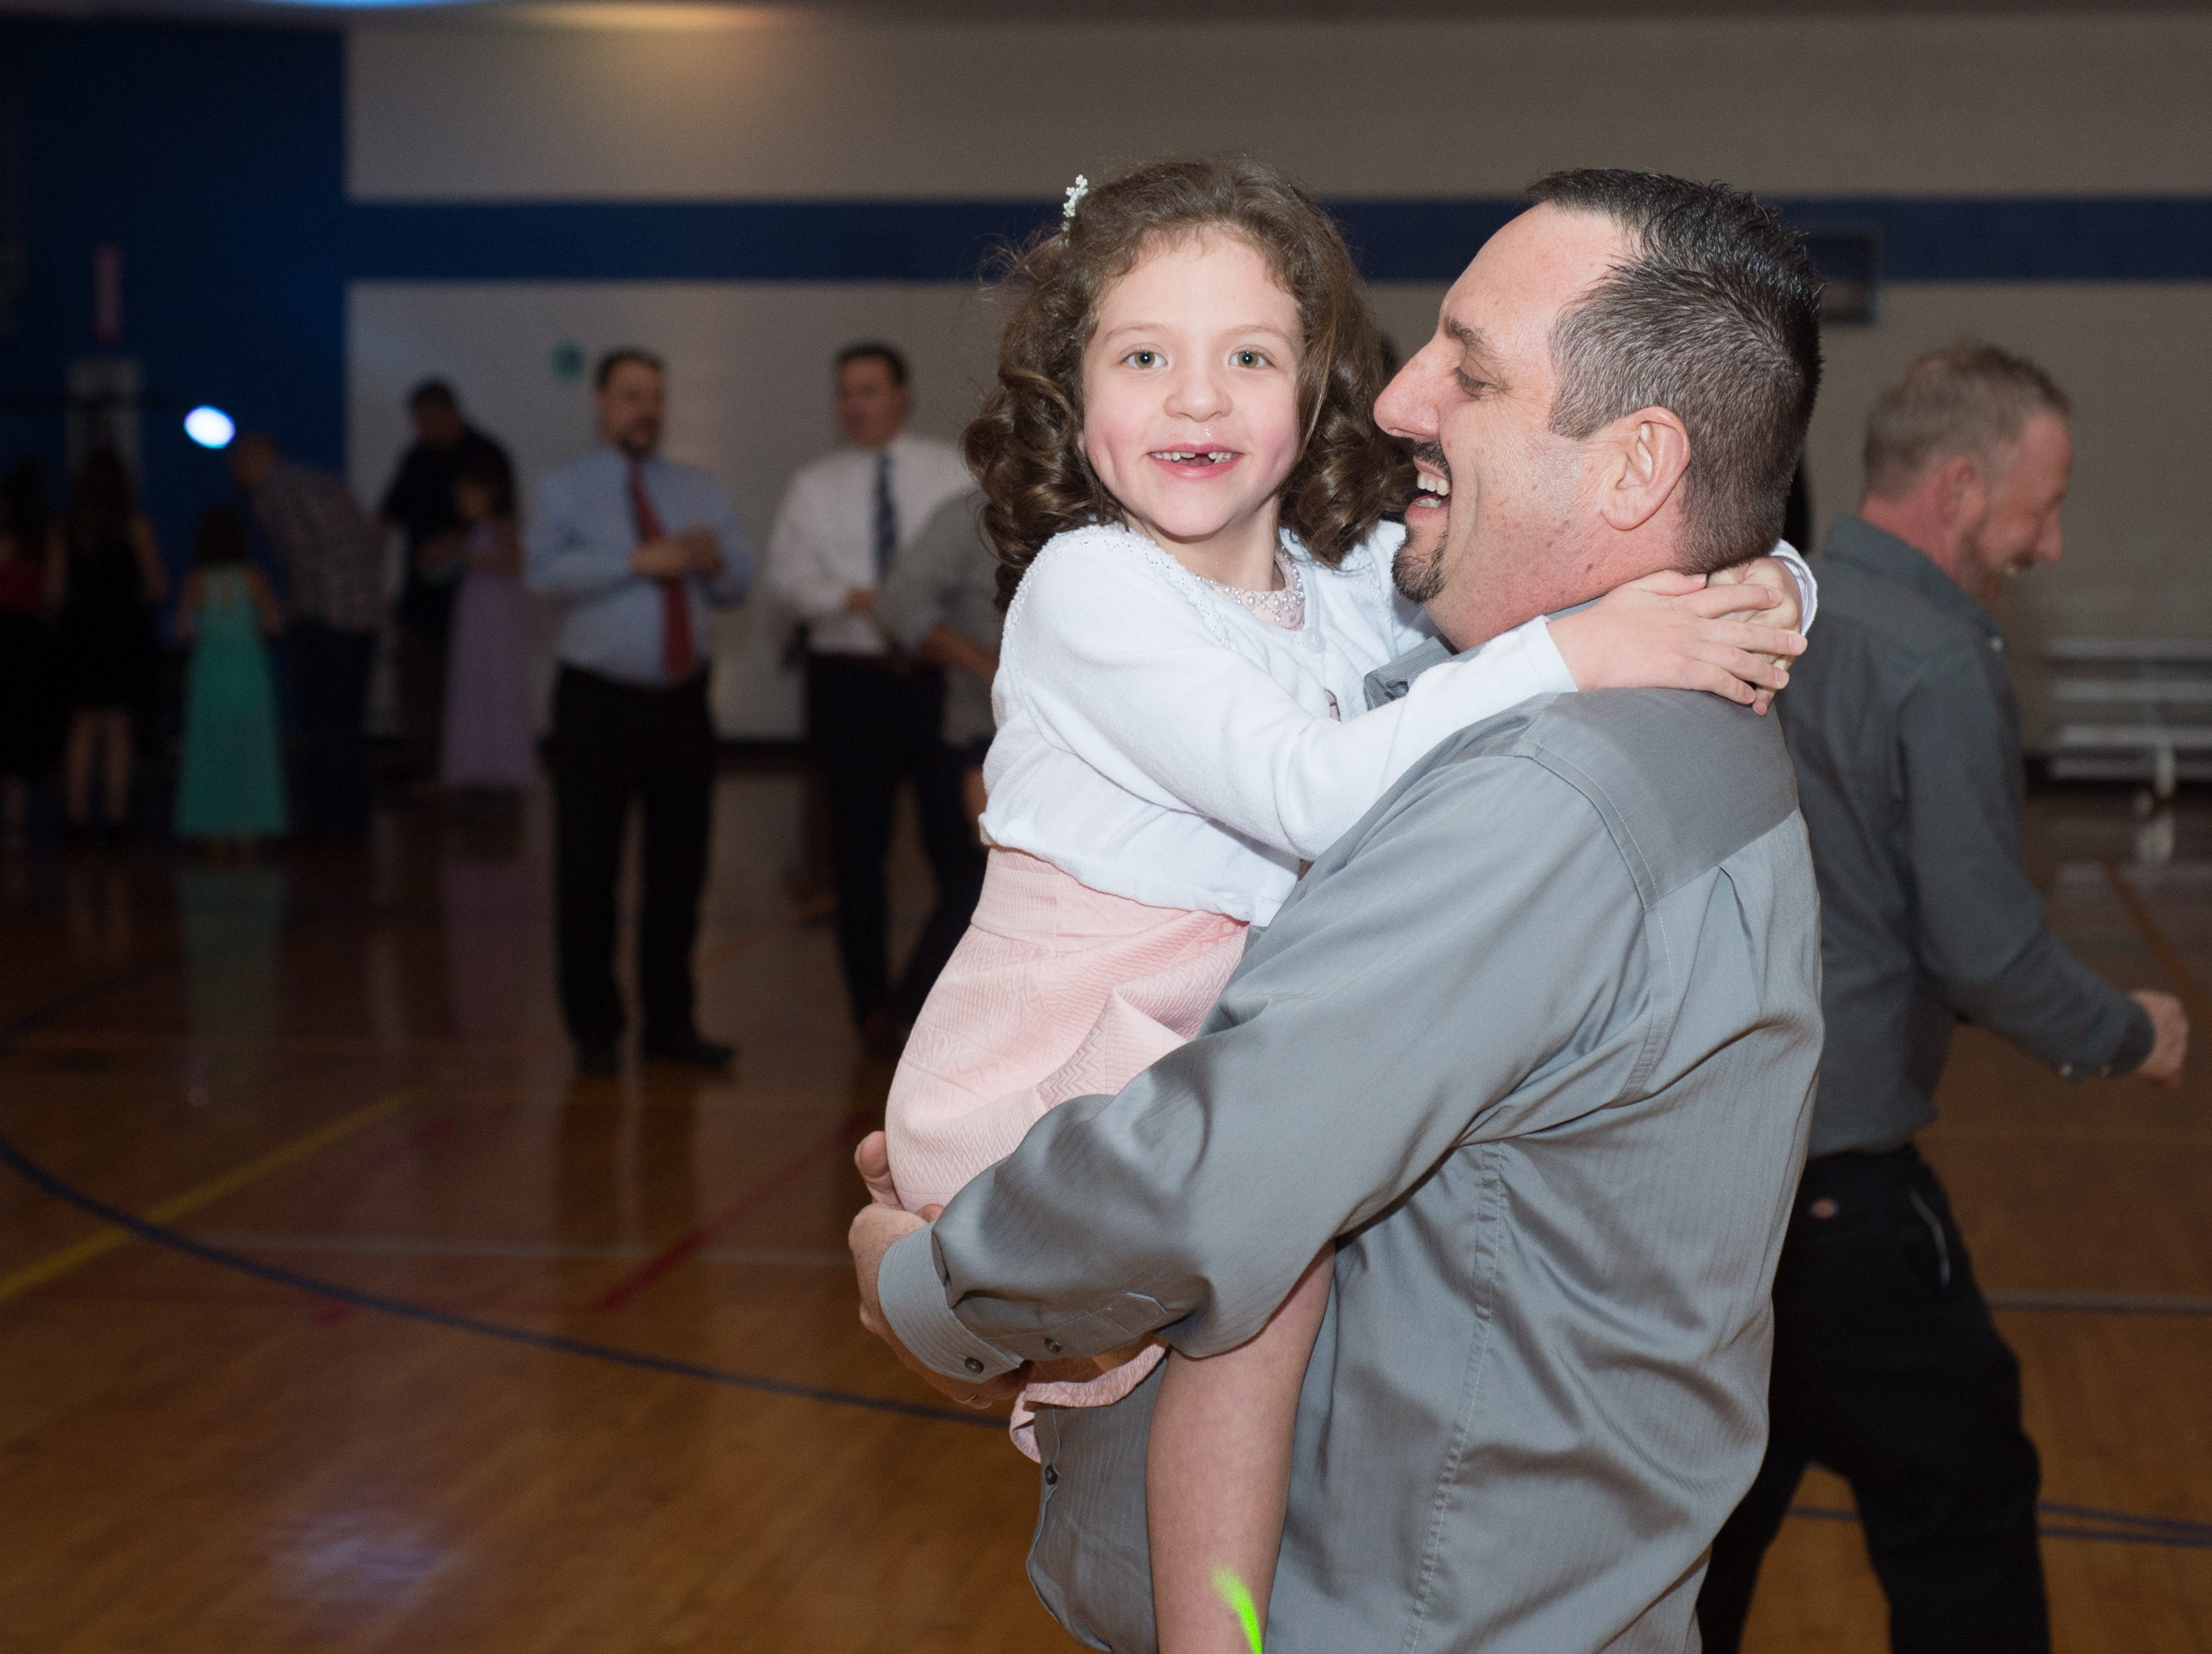 Attendees enjoy the Daddy Daughter Dance held at Delmas Long Community Center on Saturday, Feb. 2, 2019.